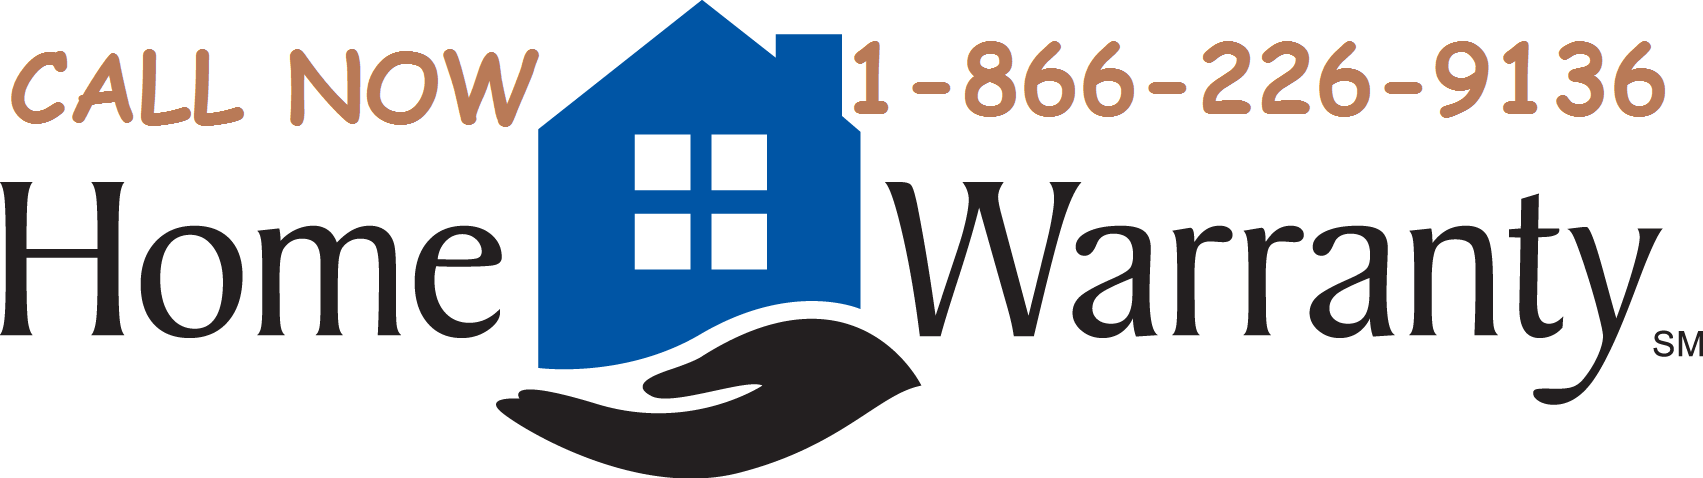 Get 40 - 50% off on Home Warranty +1-866-226-9136